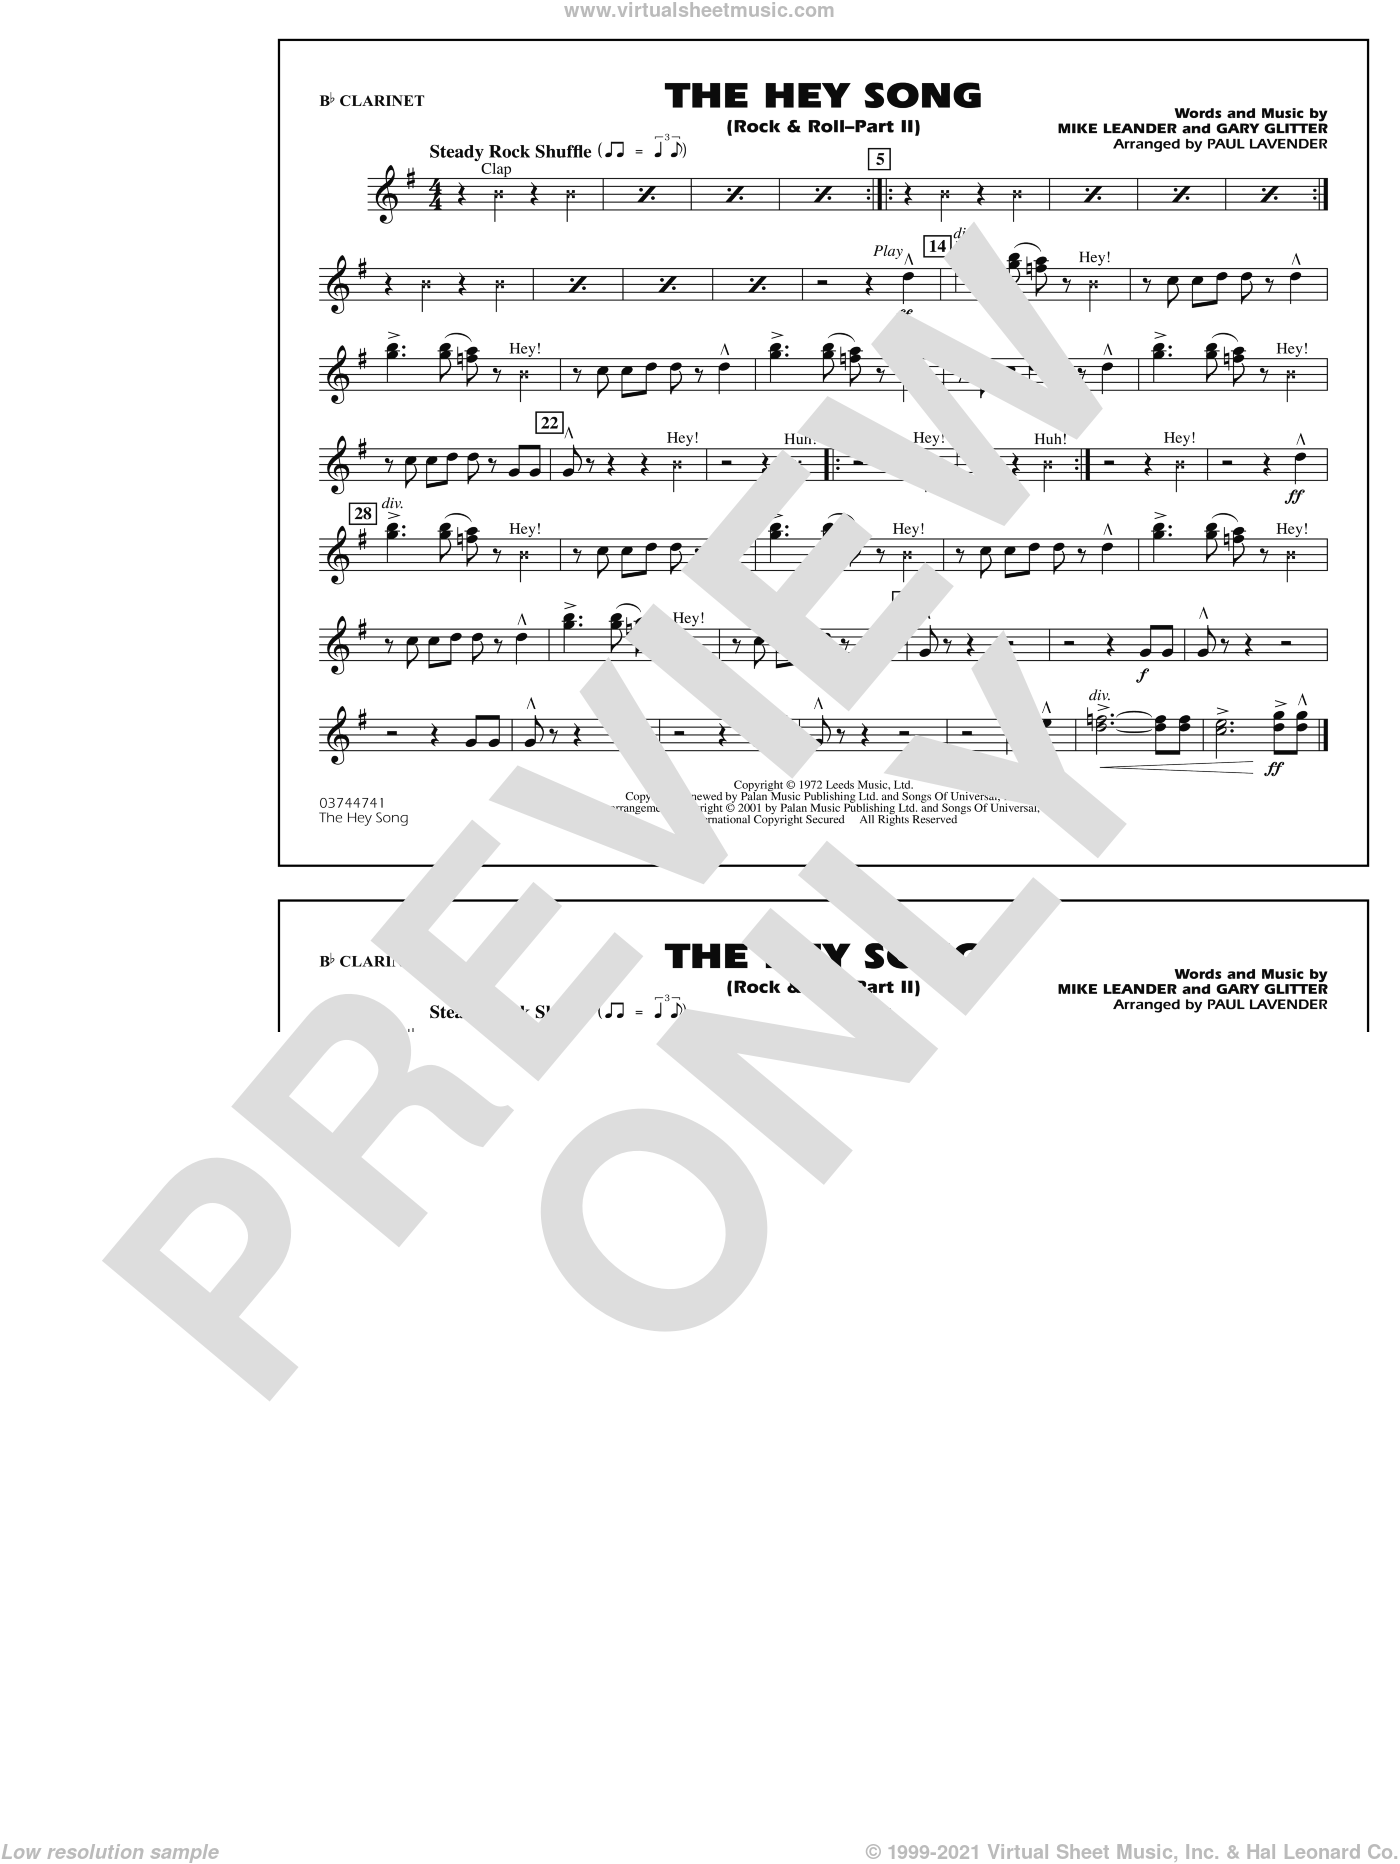 Rock and Roll, part ii (the hey song) sheet music for marching band (Bb clarinet) by Mike Leander